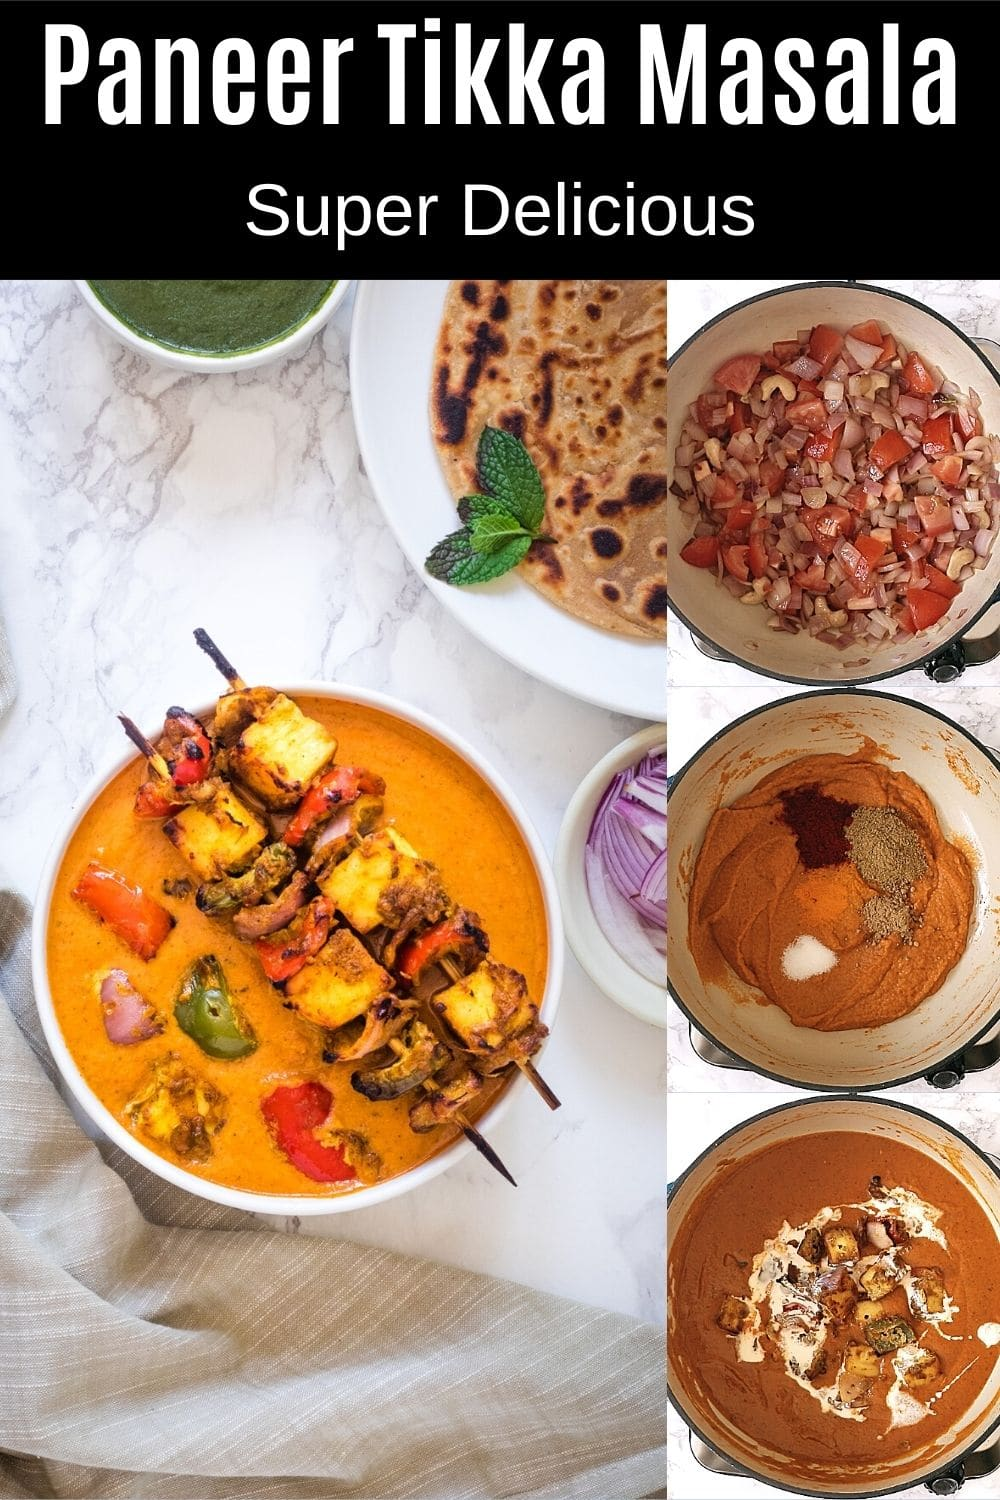 paneer tikka masala with 3 steps pics with text on the image for pinterest